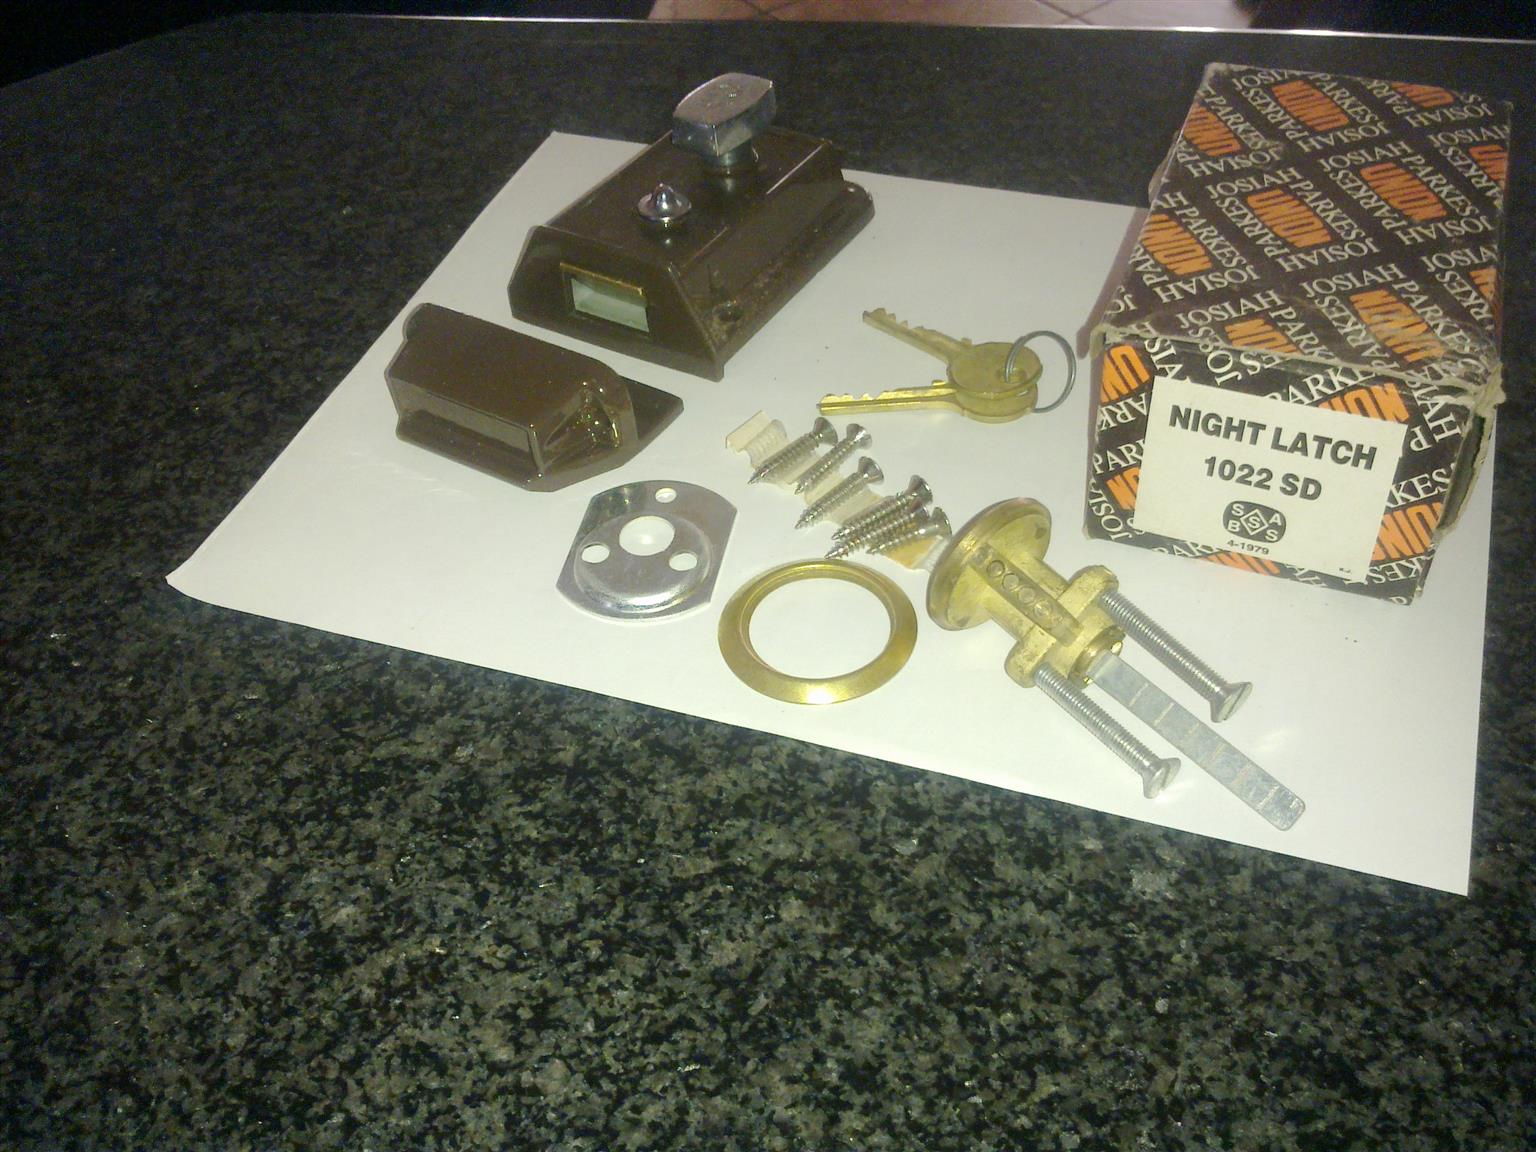 BRAND NEW QUALITY UNION DOOR YALE LOCKS FOR SALE